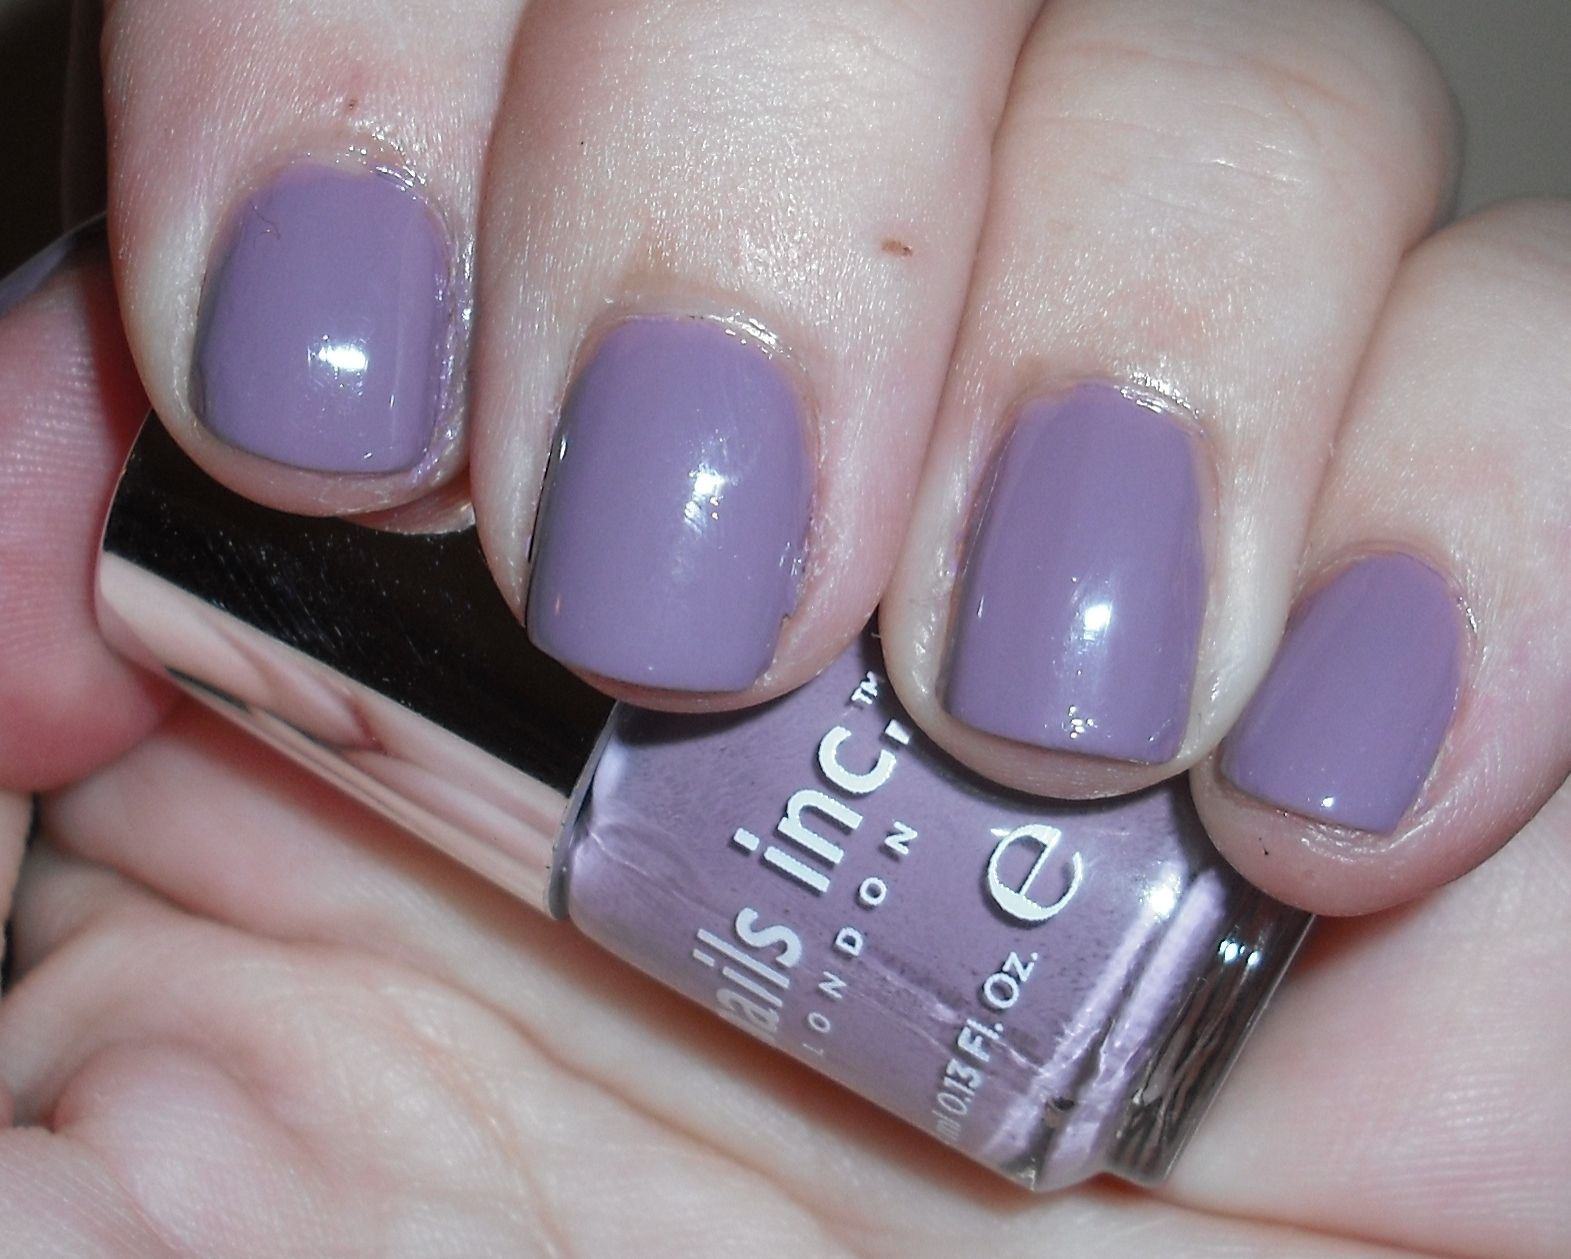 Nails Inc Lowndes Square